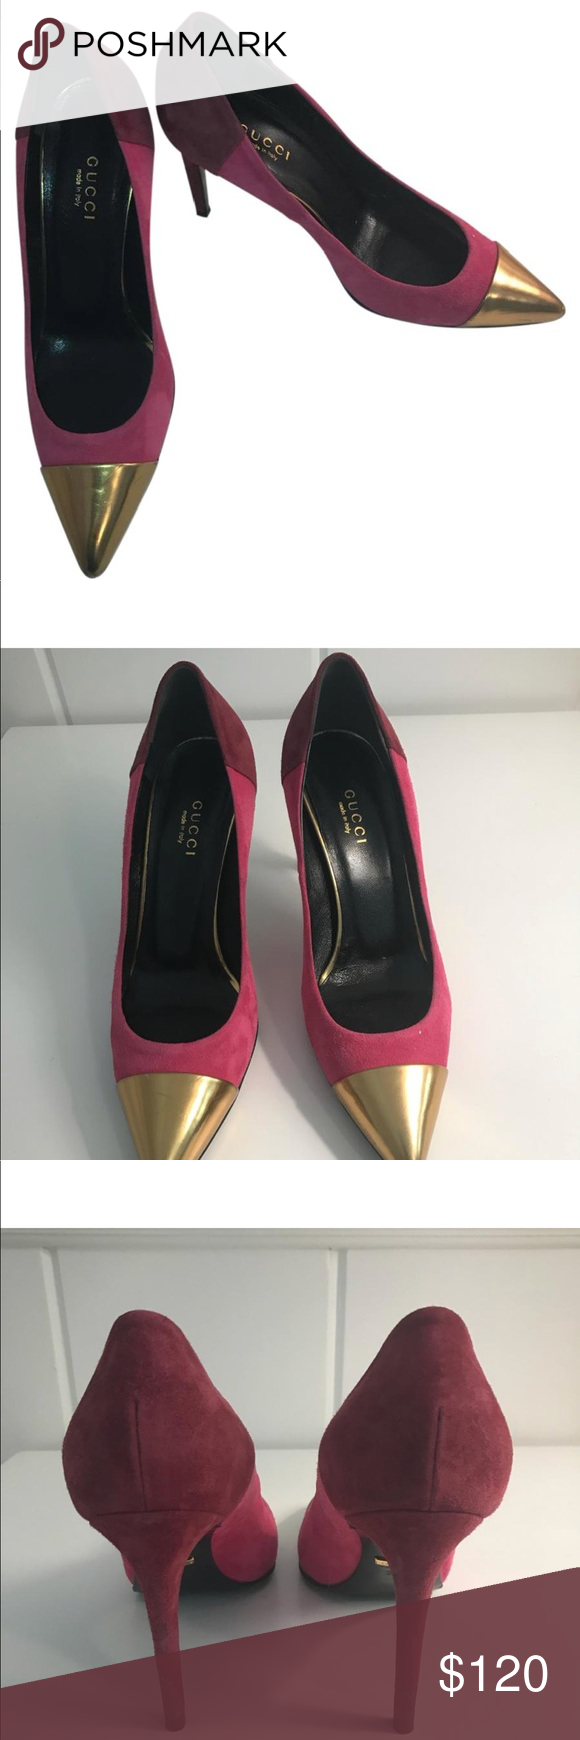 2a1cc9350f9b Gucci fuchsia plum and gold suede pumps Authentic Gucci pumps .. lightly  worn. Outer sole and back of the heels have small signs of wear Gucci Shoes  Heels